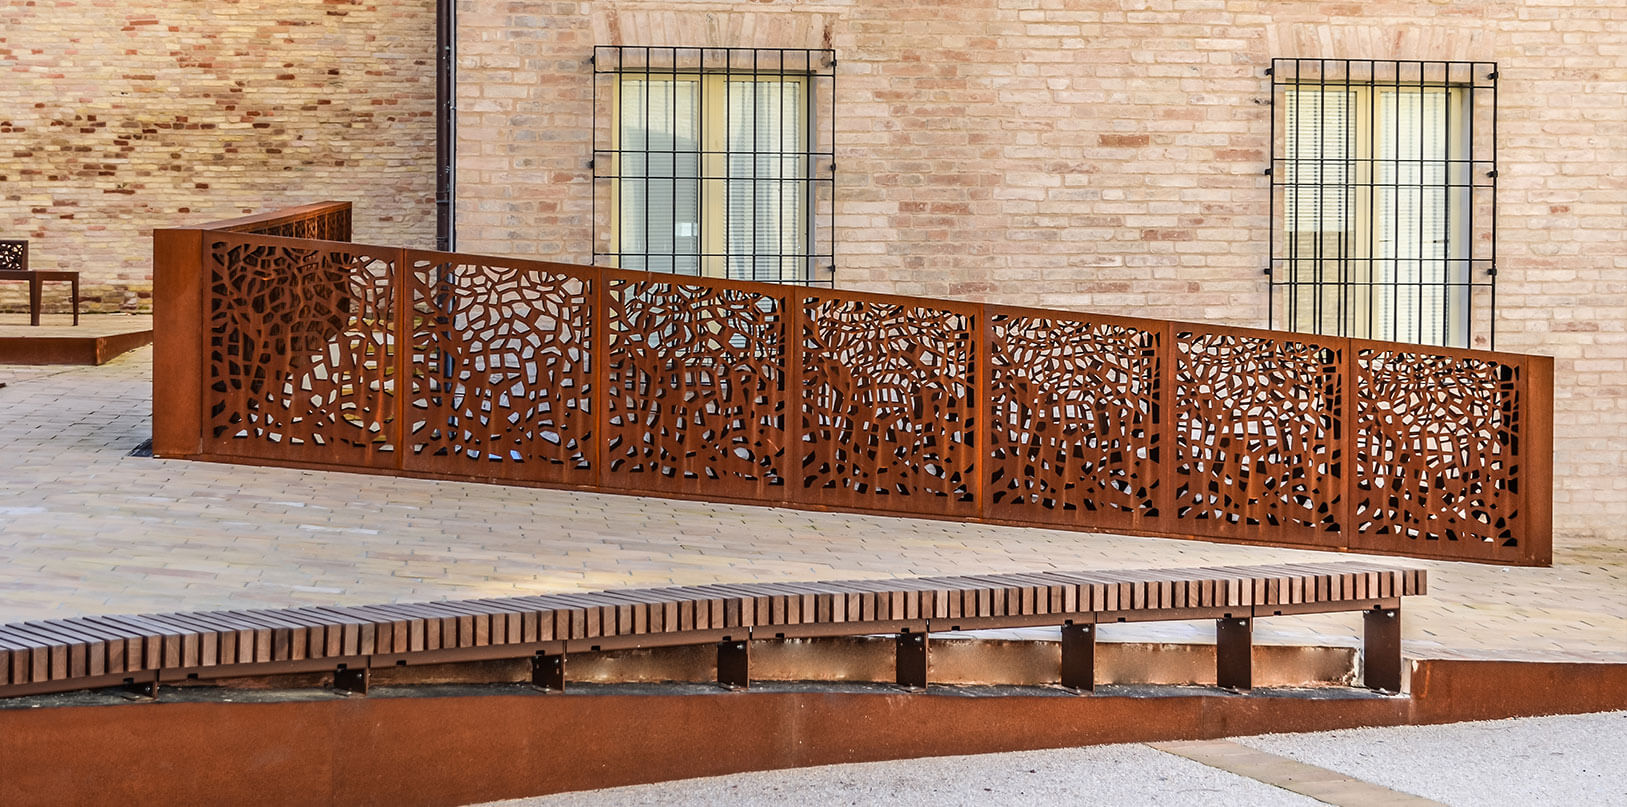 ramp delimited by a laser engraved steel railing and corten borders